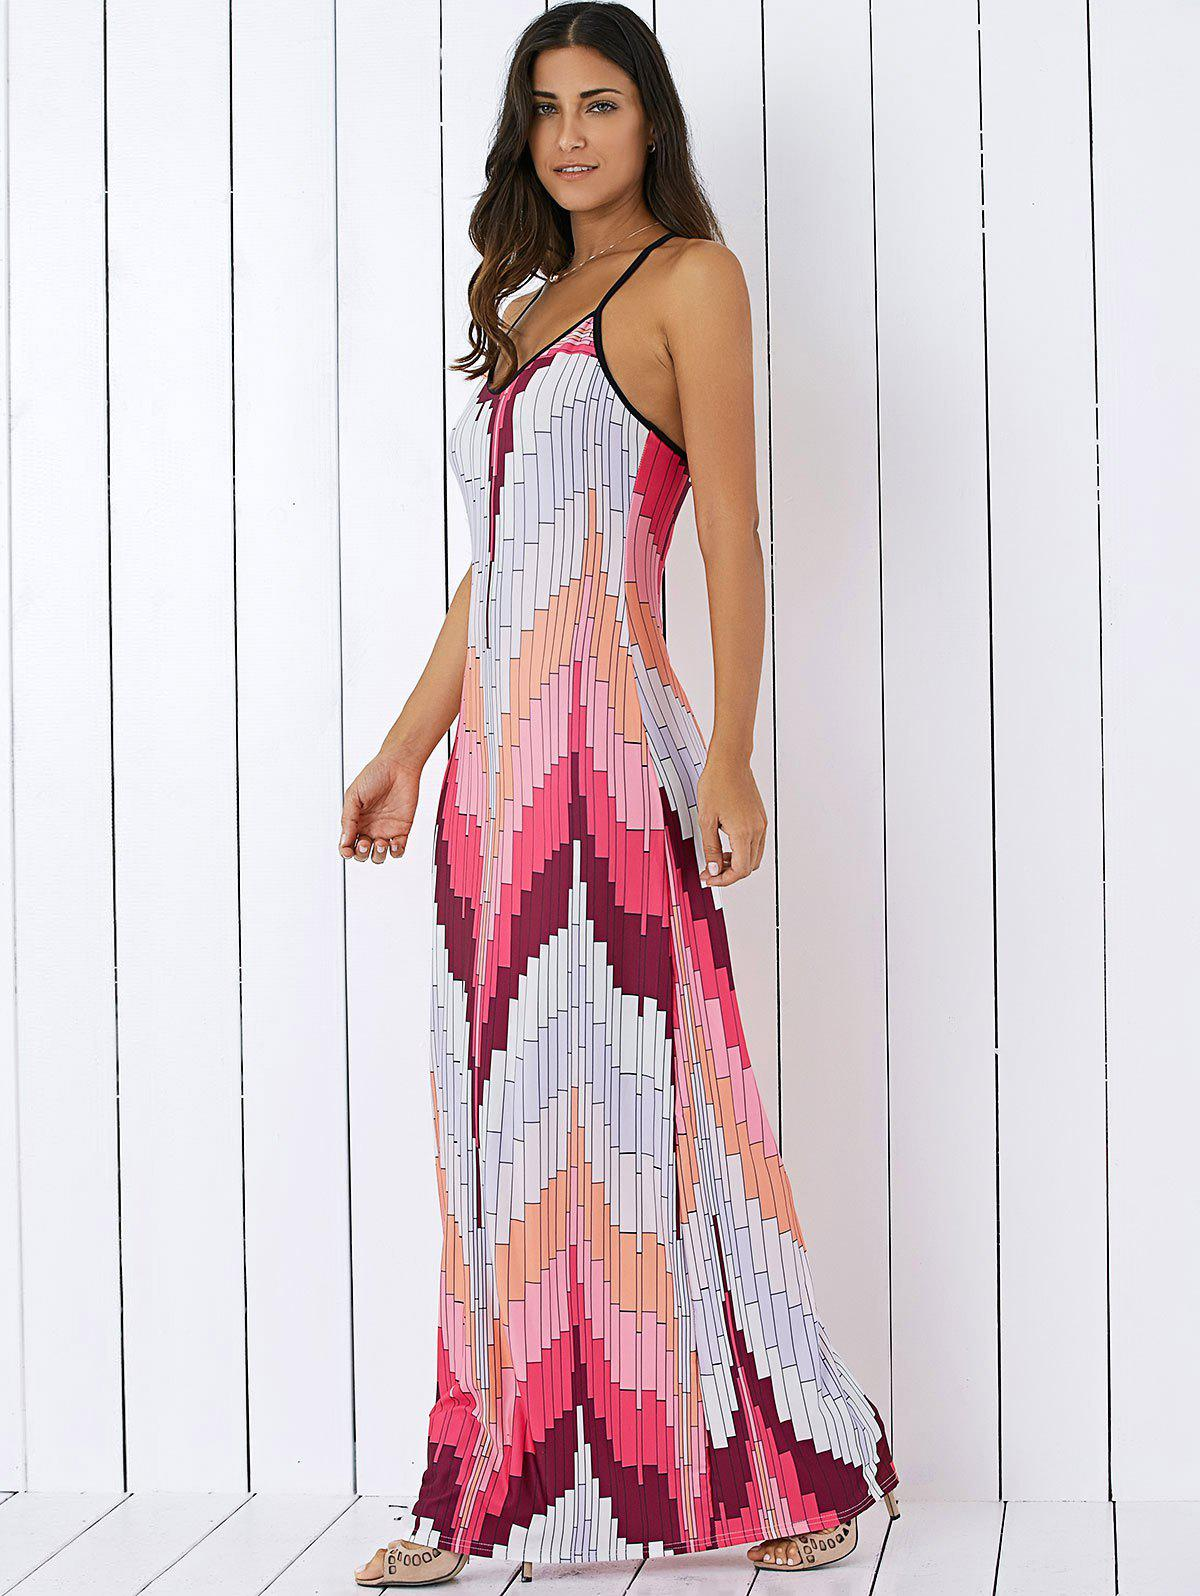 Printed Pattern Summer Long Slip Dress - Rose Clair S